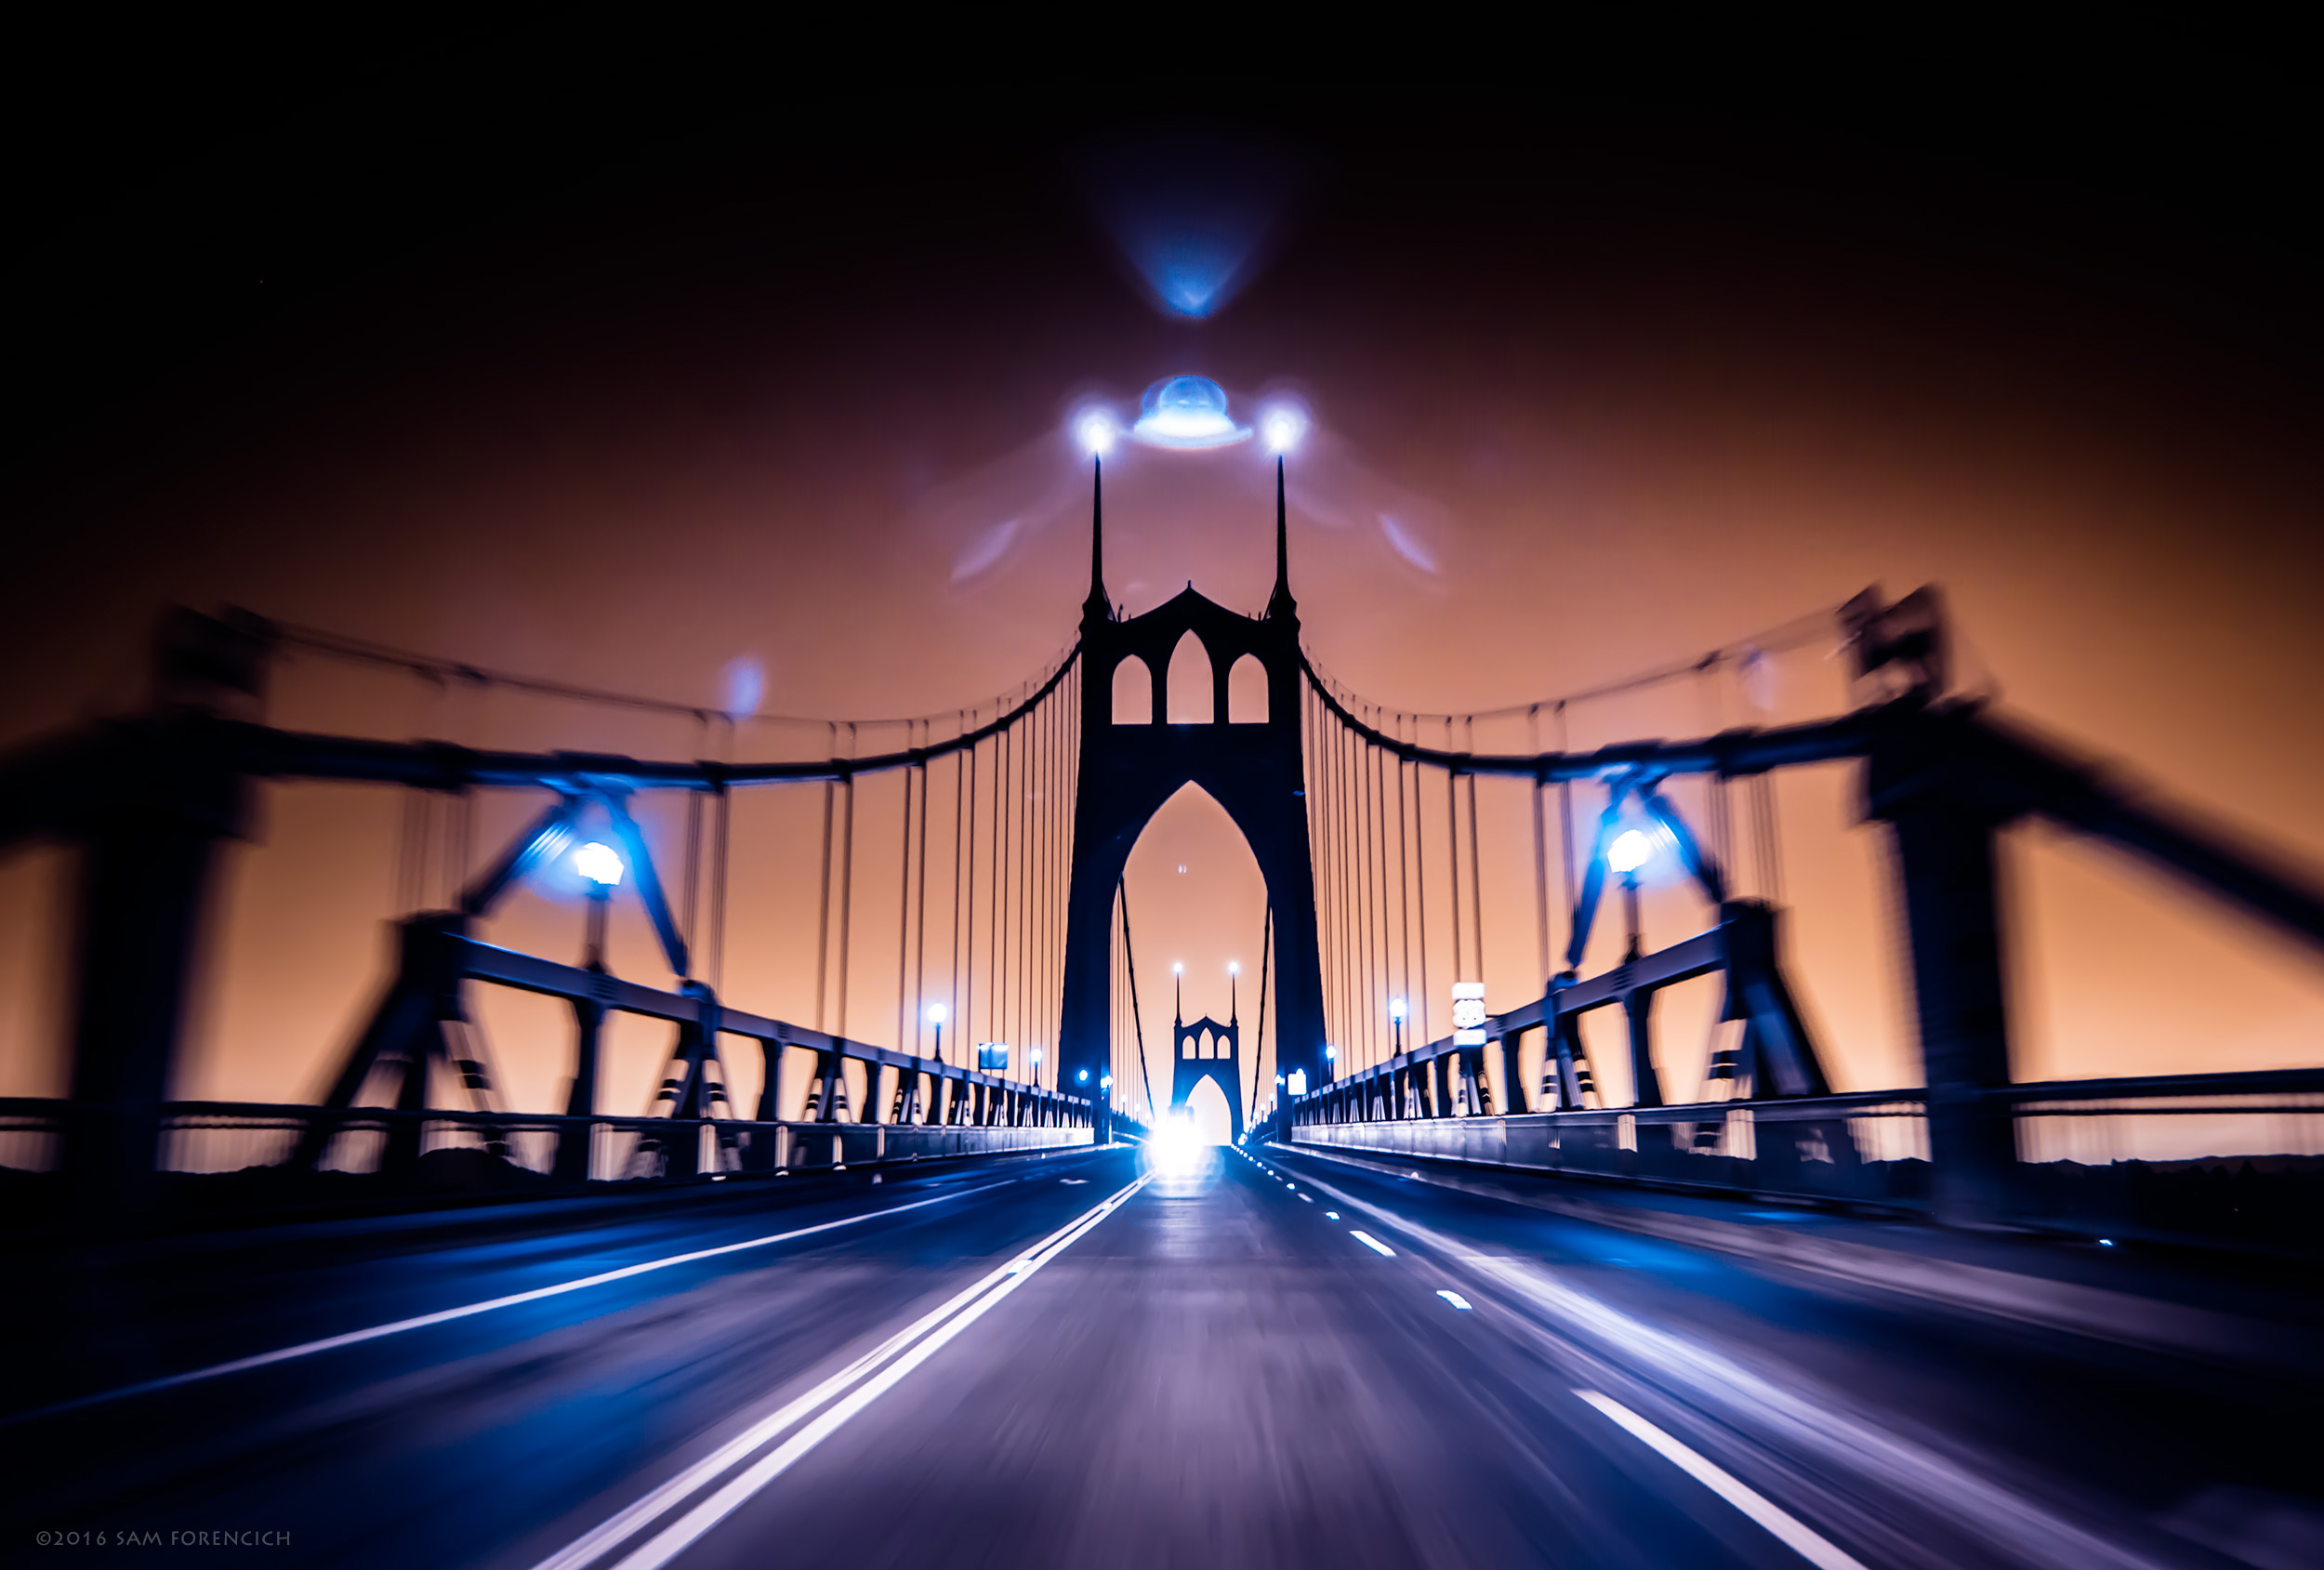 Early morning eastbound commute on the St. Johns Bridge in Portland, Oregon. IR converted Nikon D750. © 2016 Sam Forencich